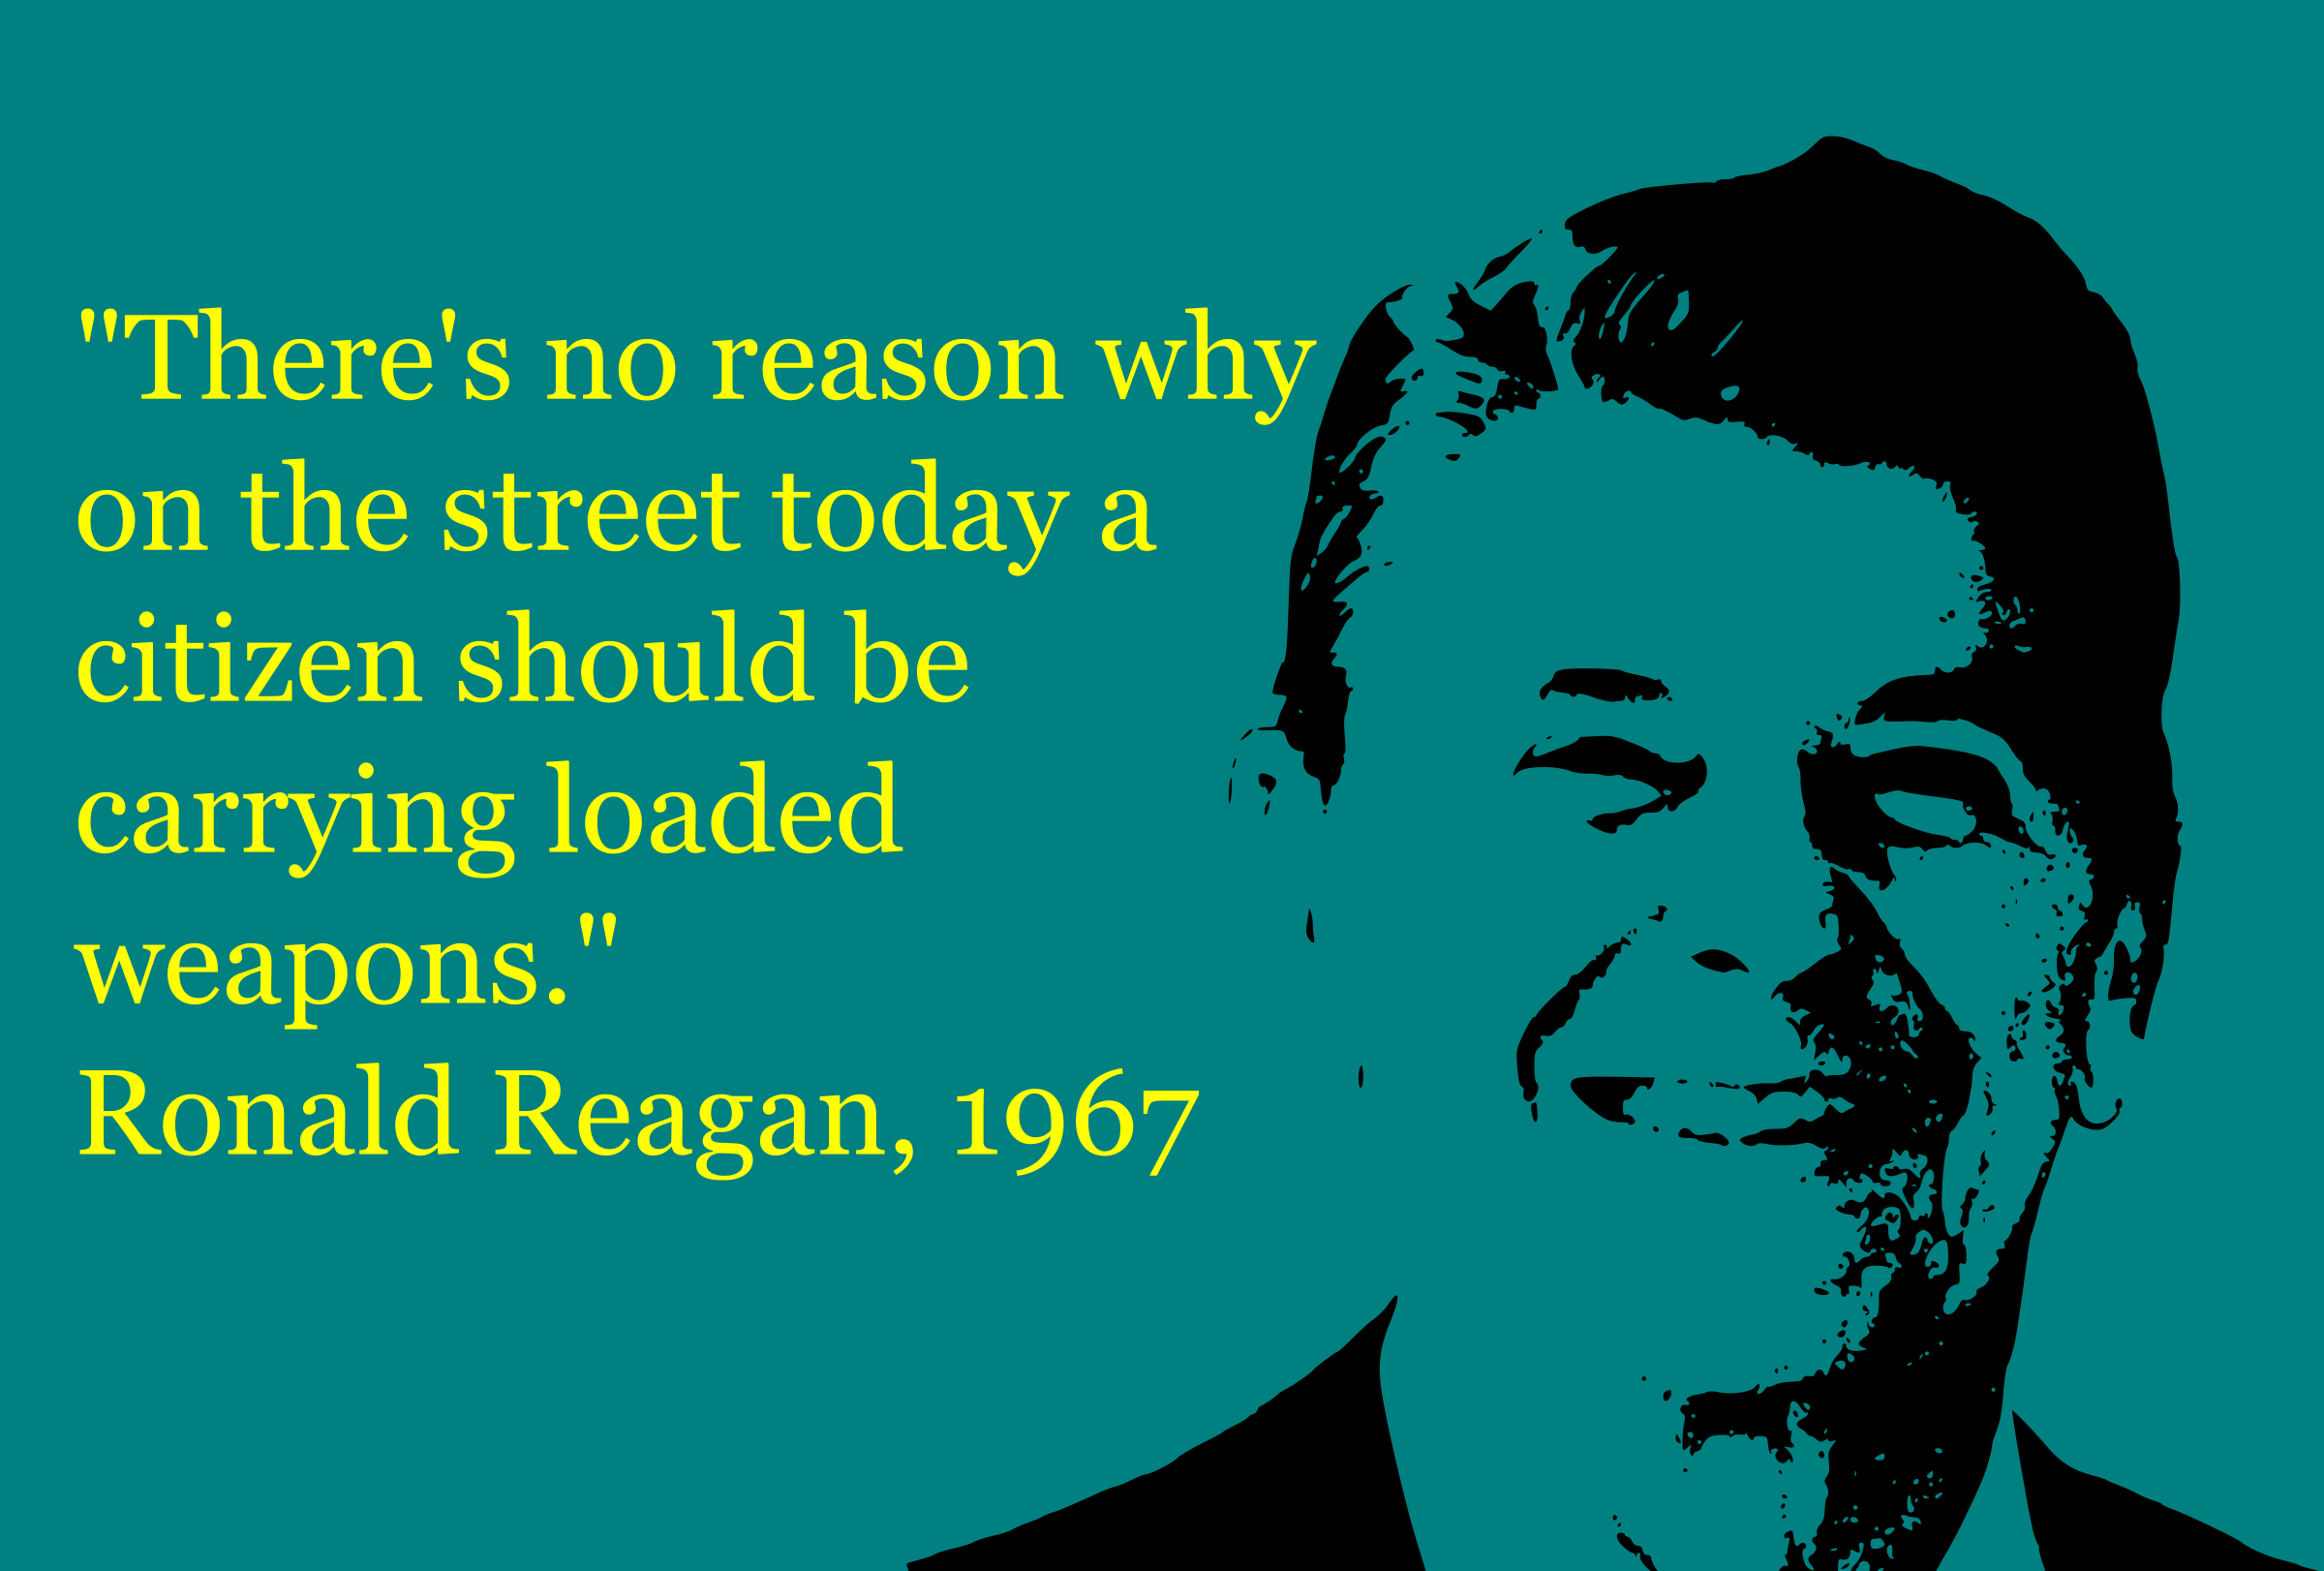 Ronald Reagan quote 2 by liftarn